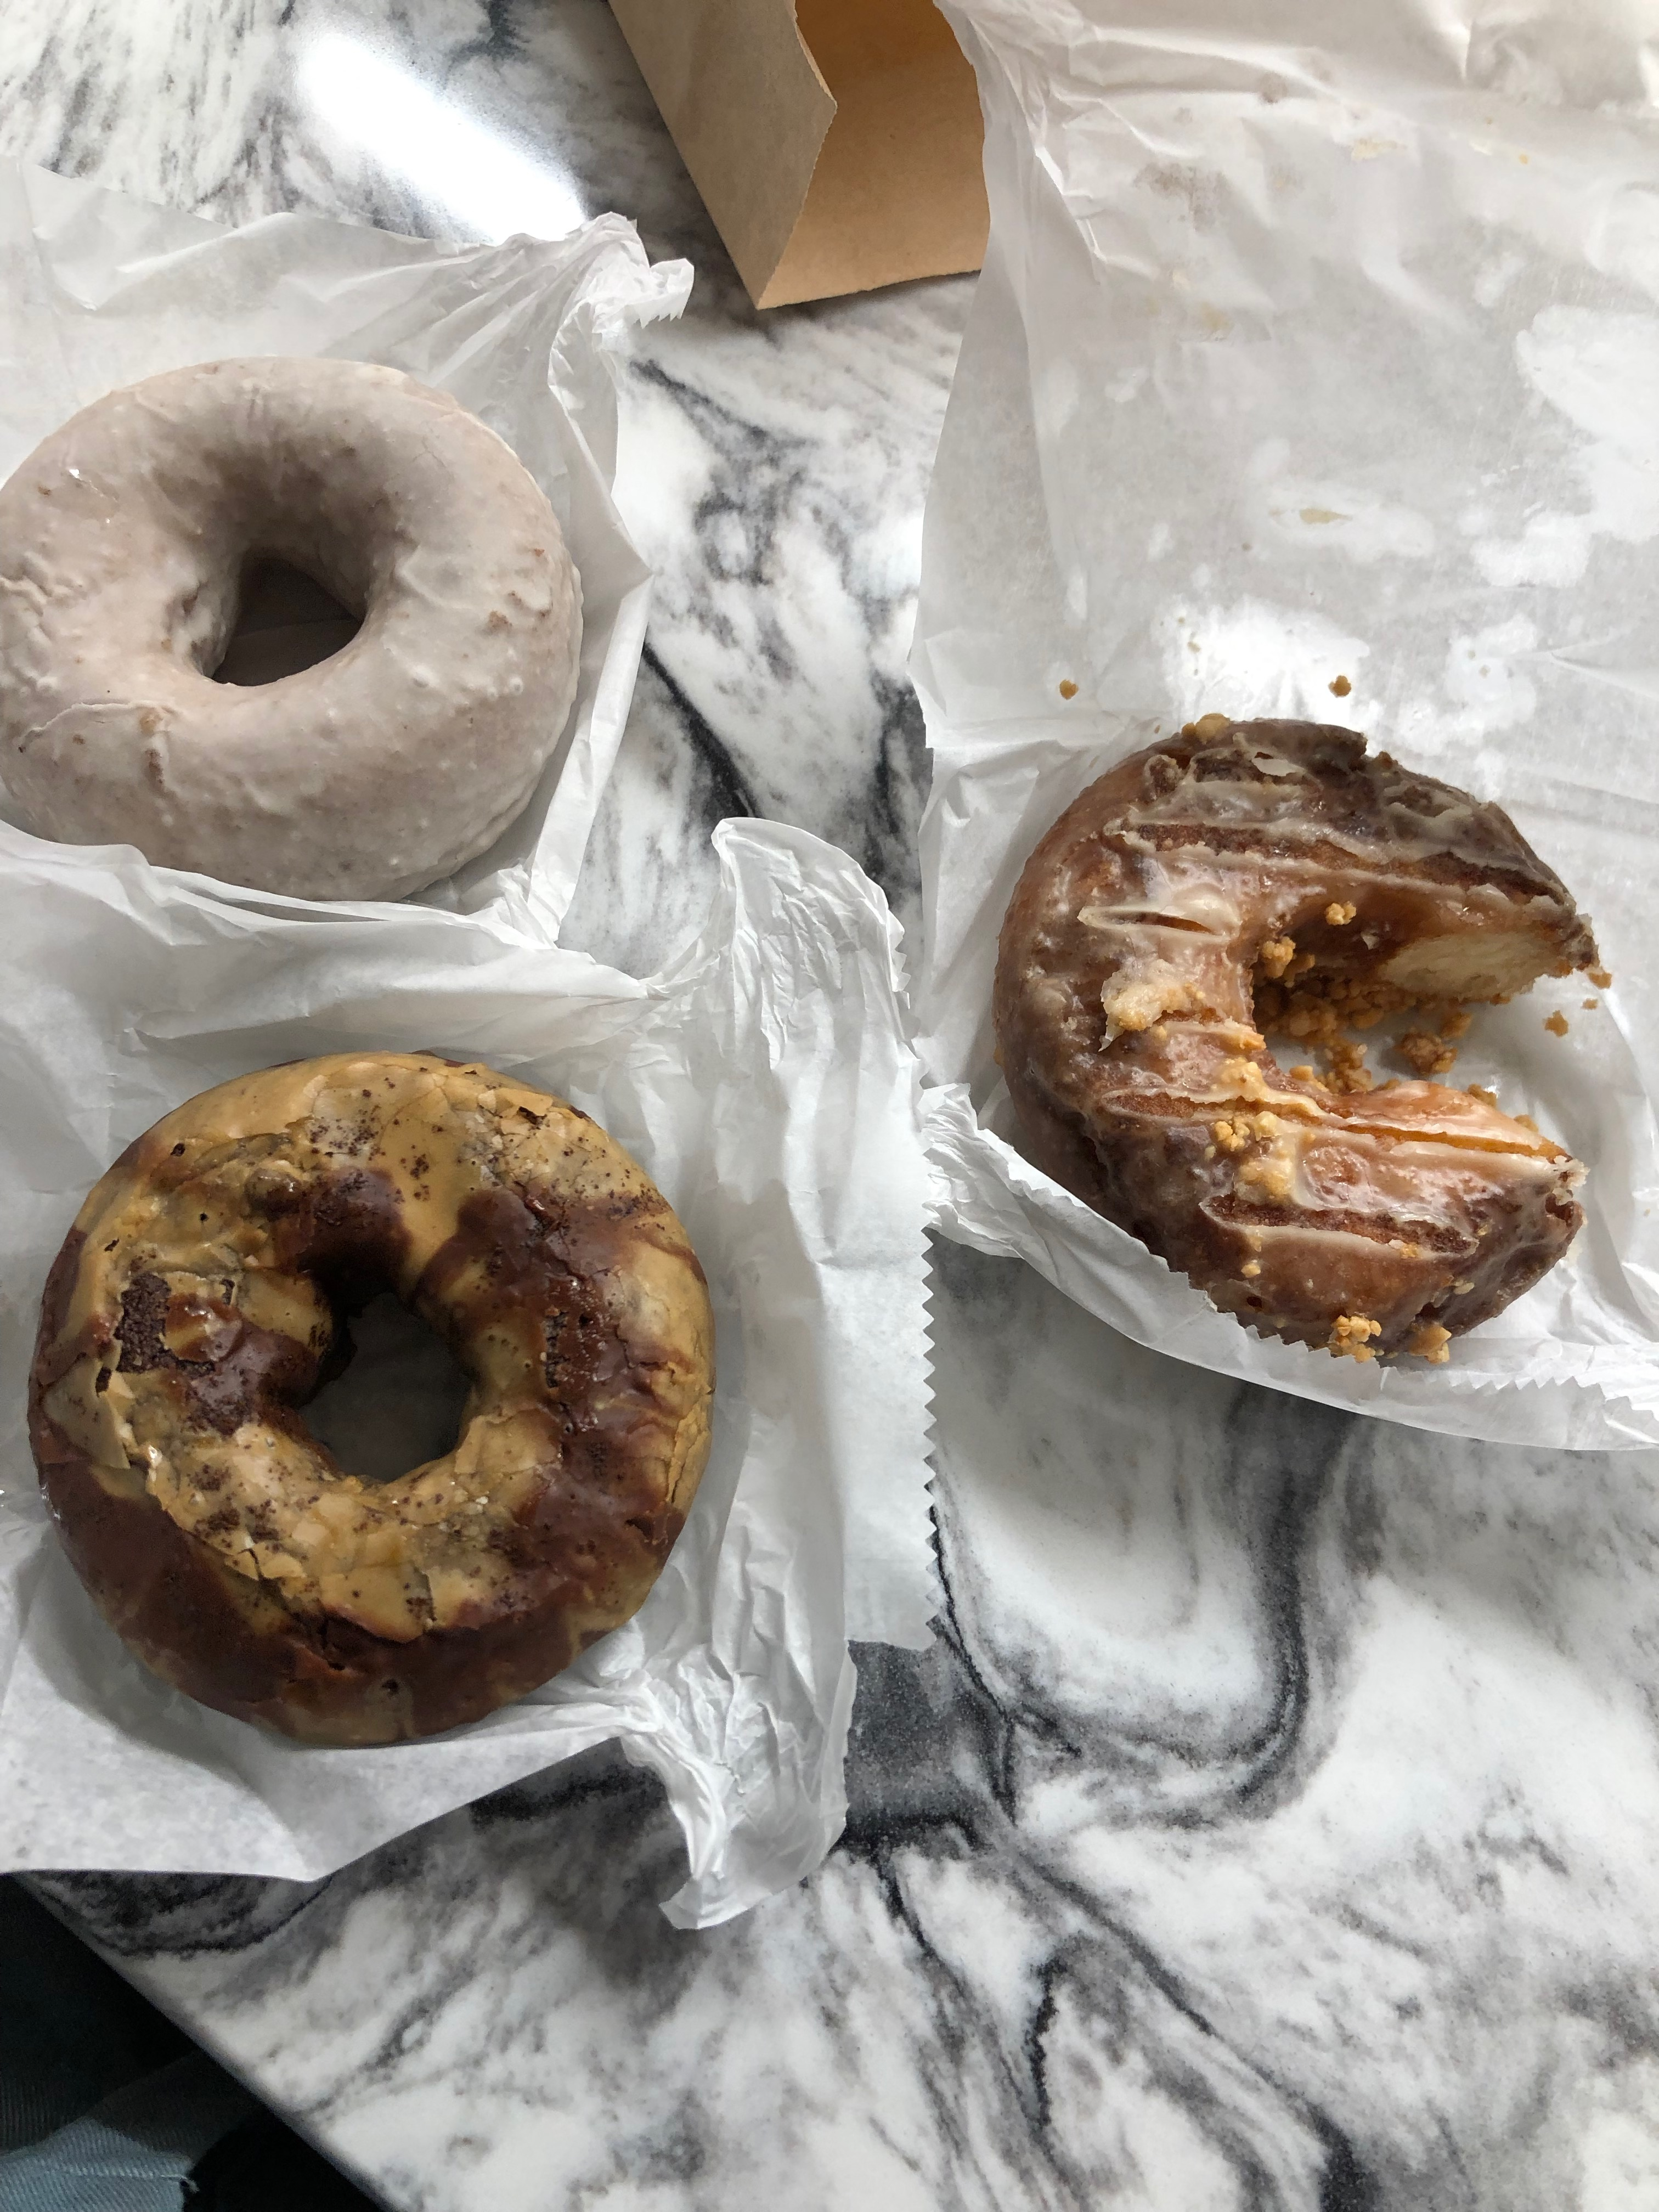 Doughnuts and Food (Doughnut Plant)